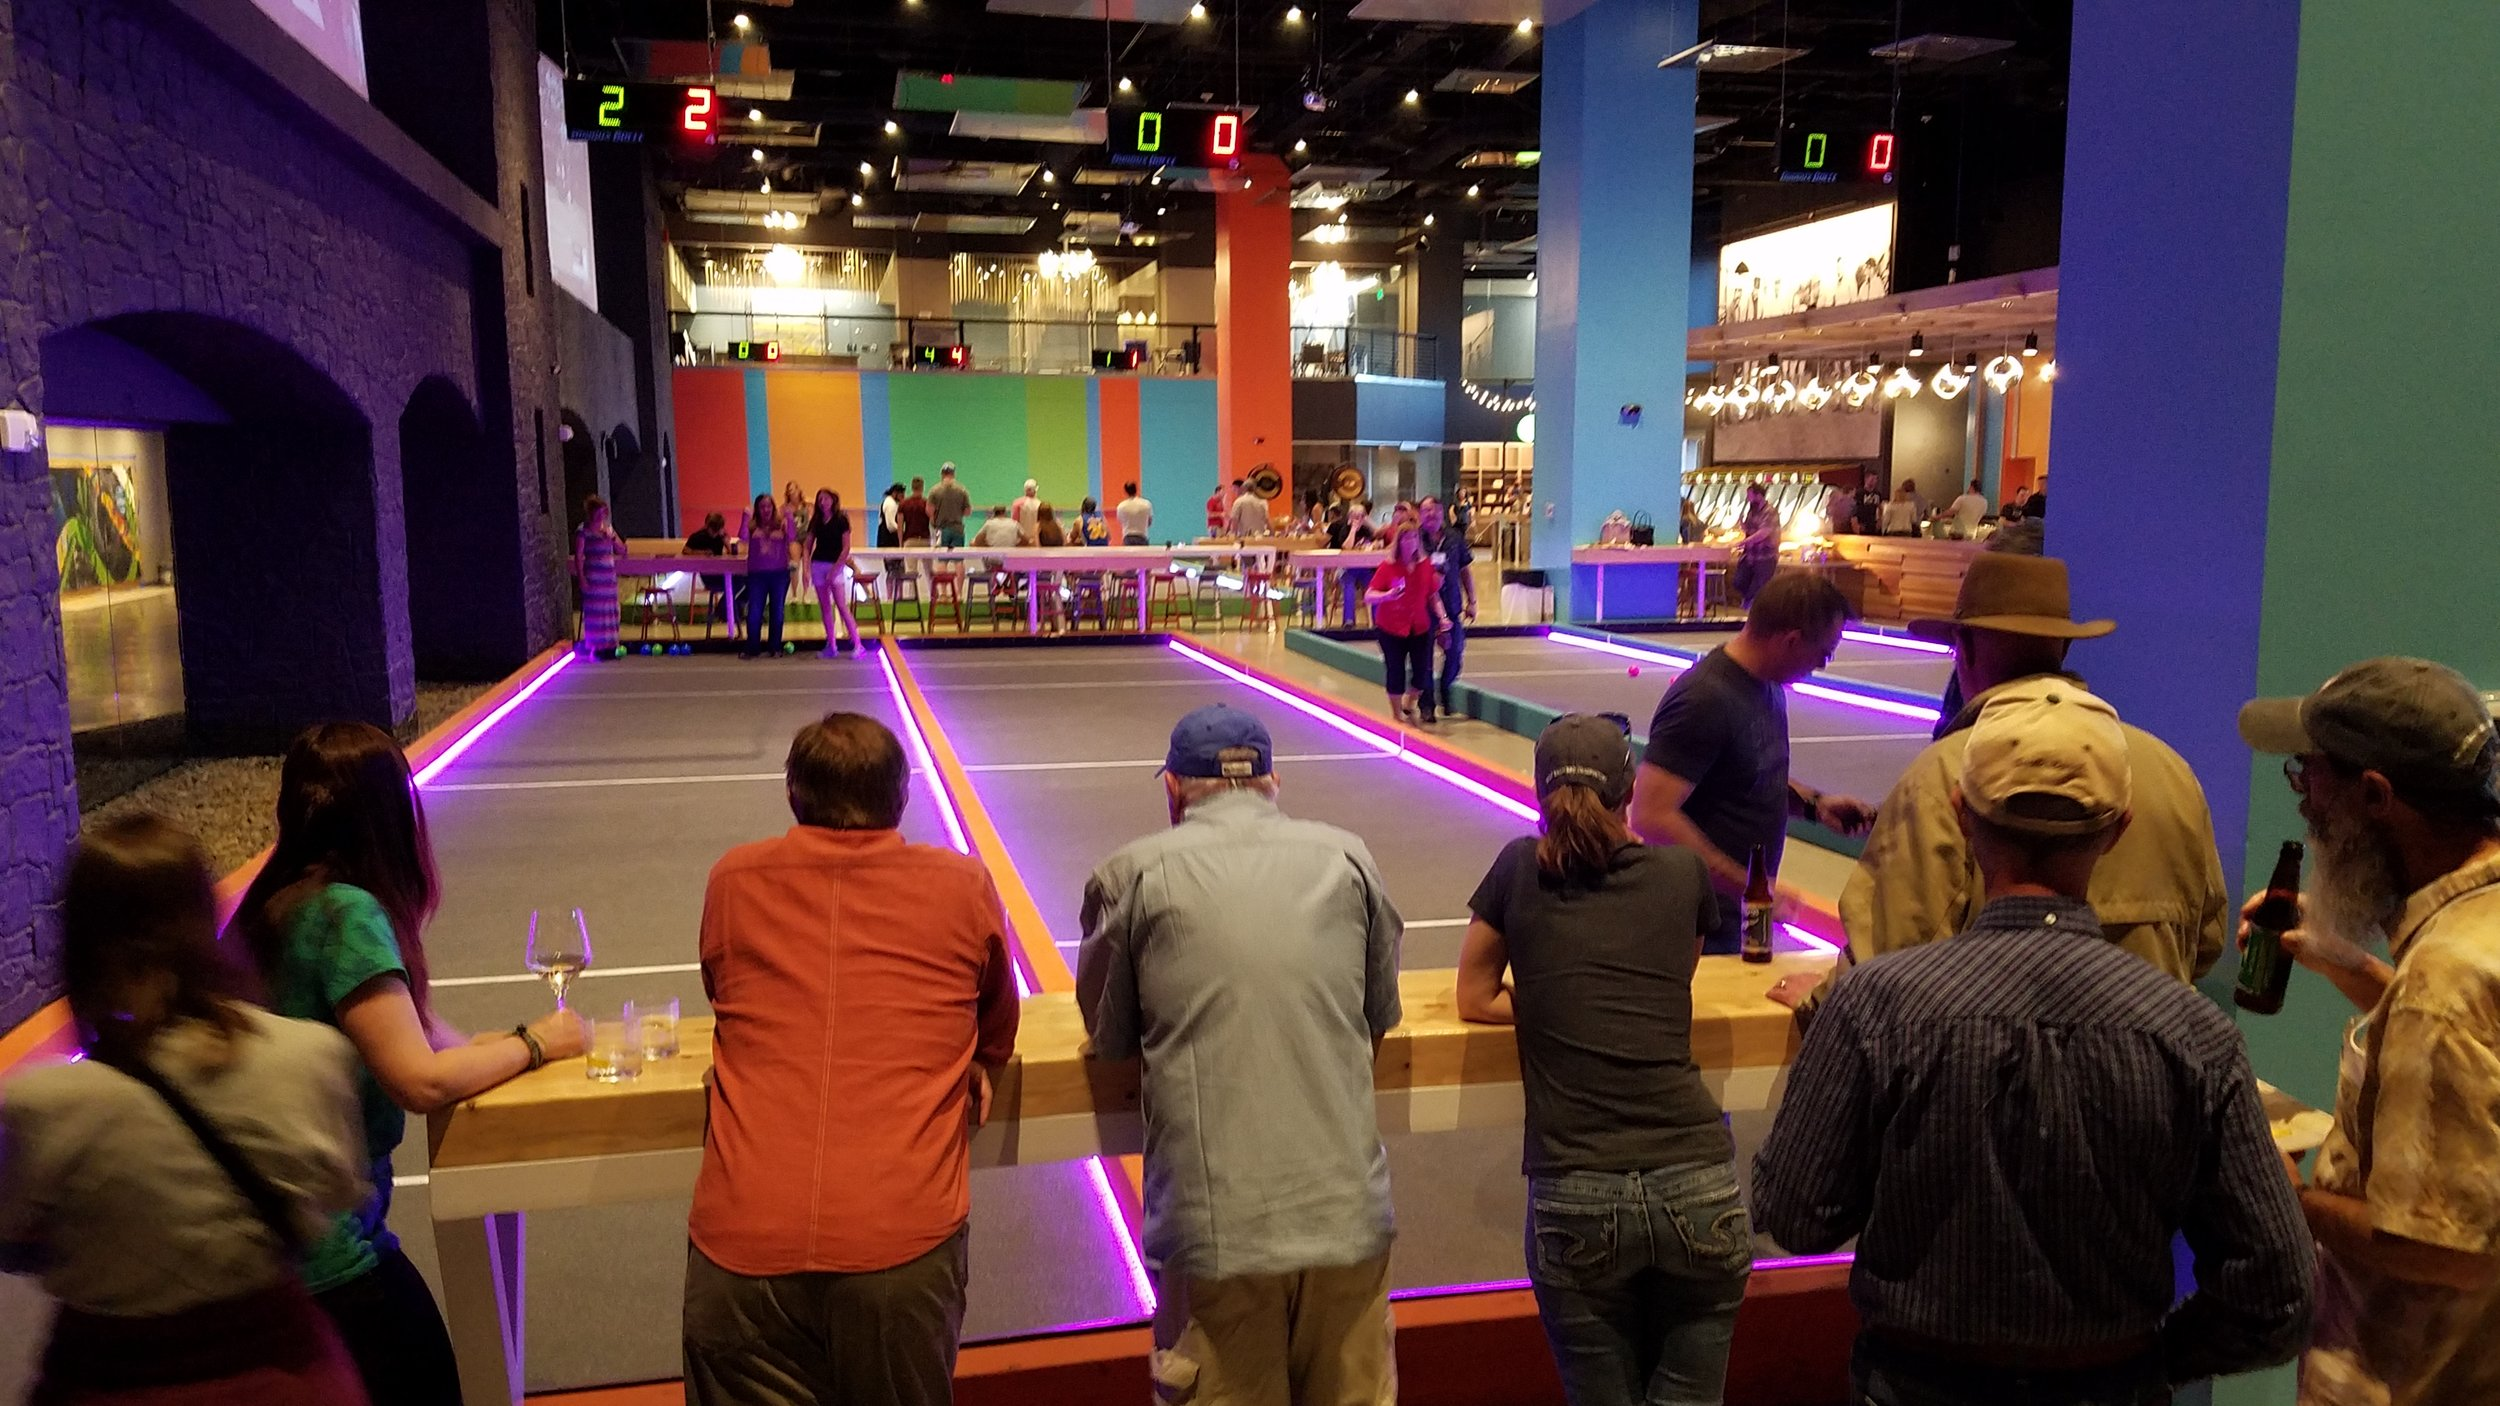 Folks getting ready to play bocce ball. Photo by Martin Swinehart.